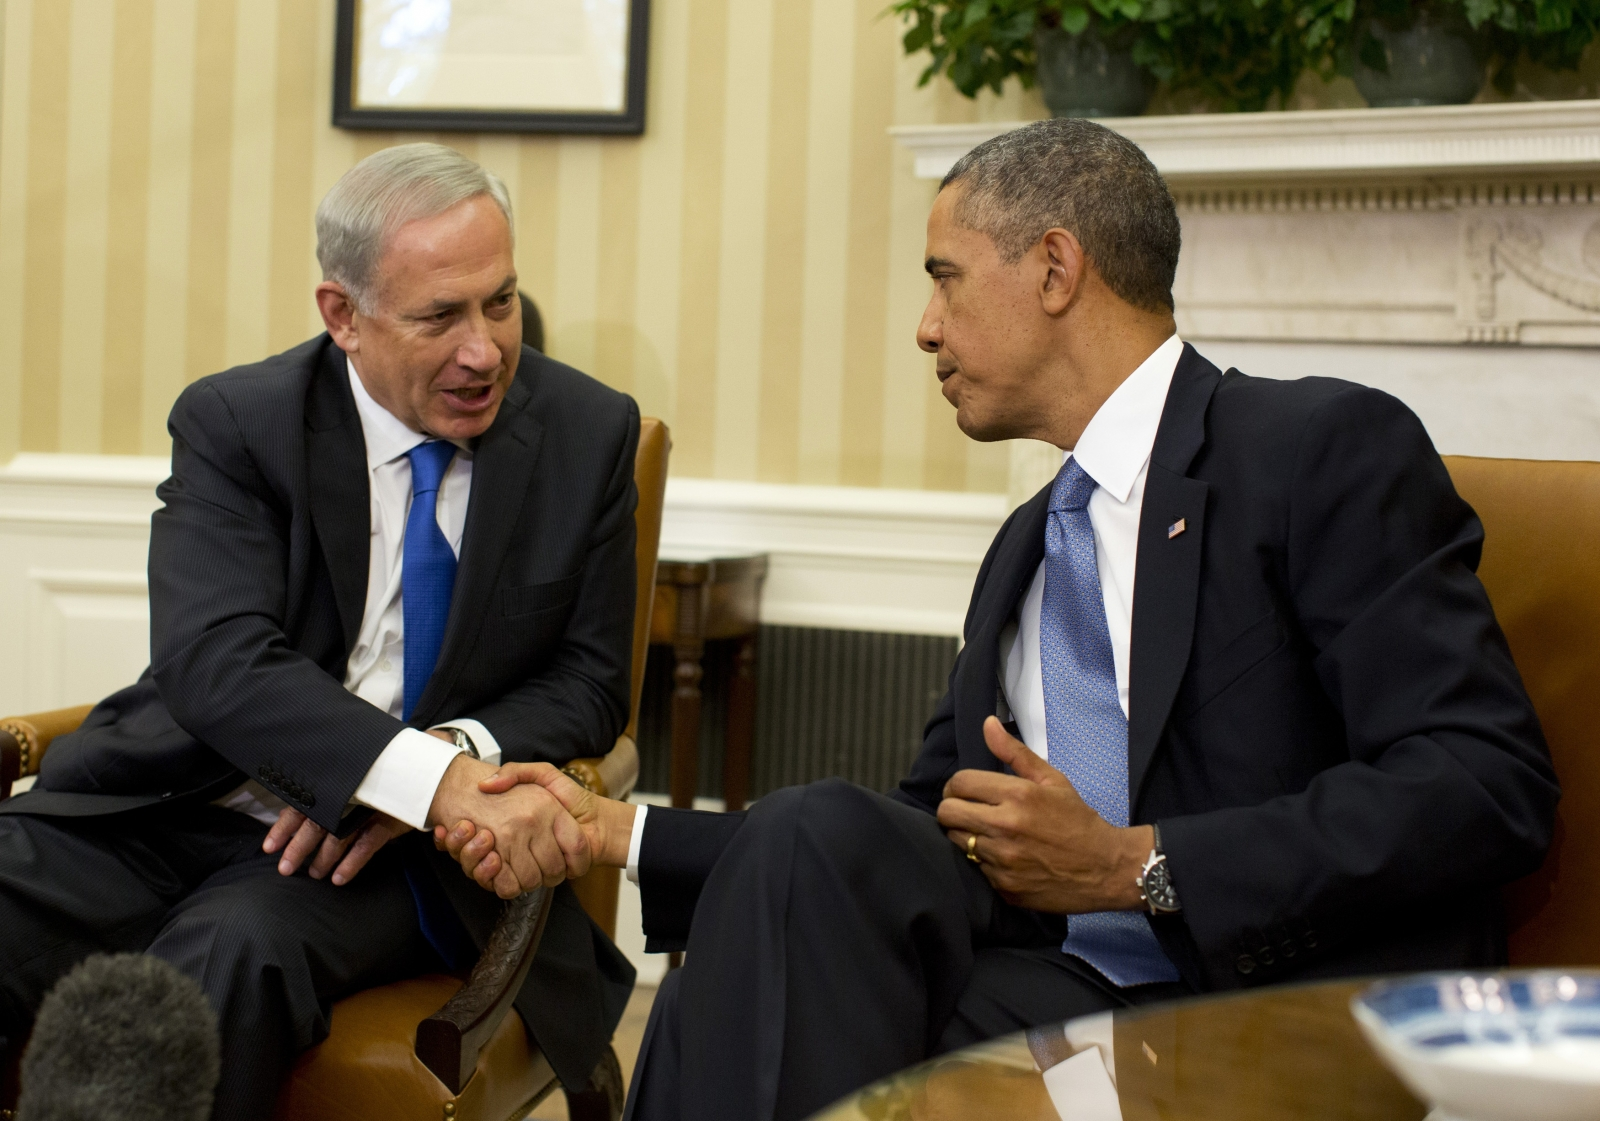 Obama Netanyahu US Israel